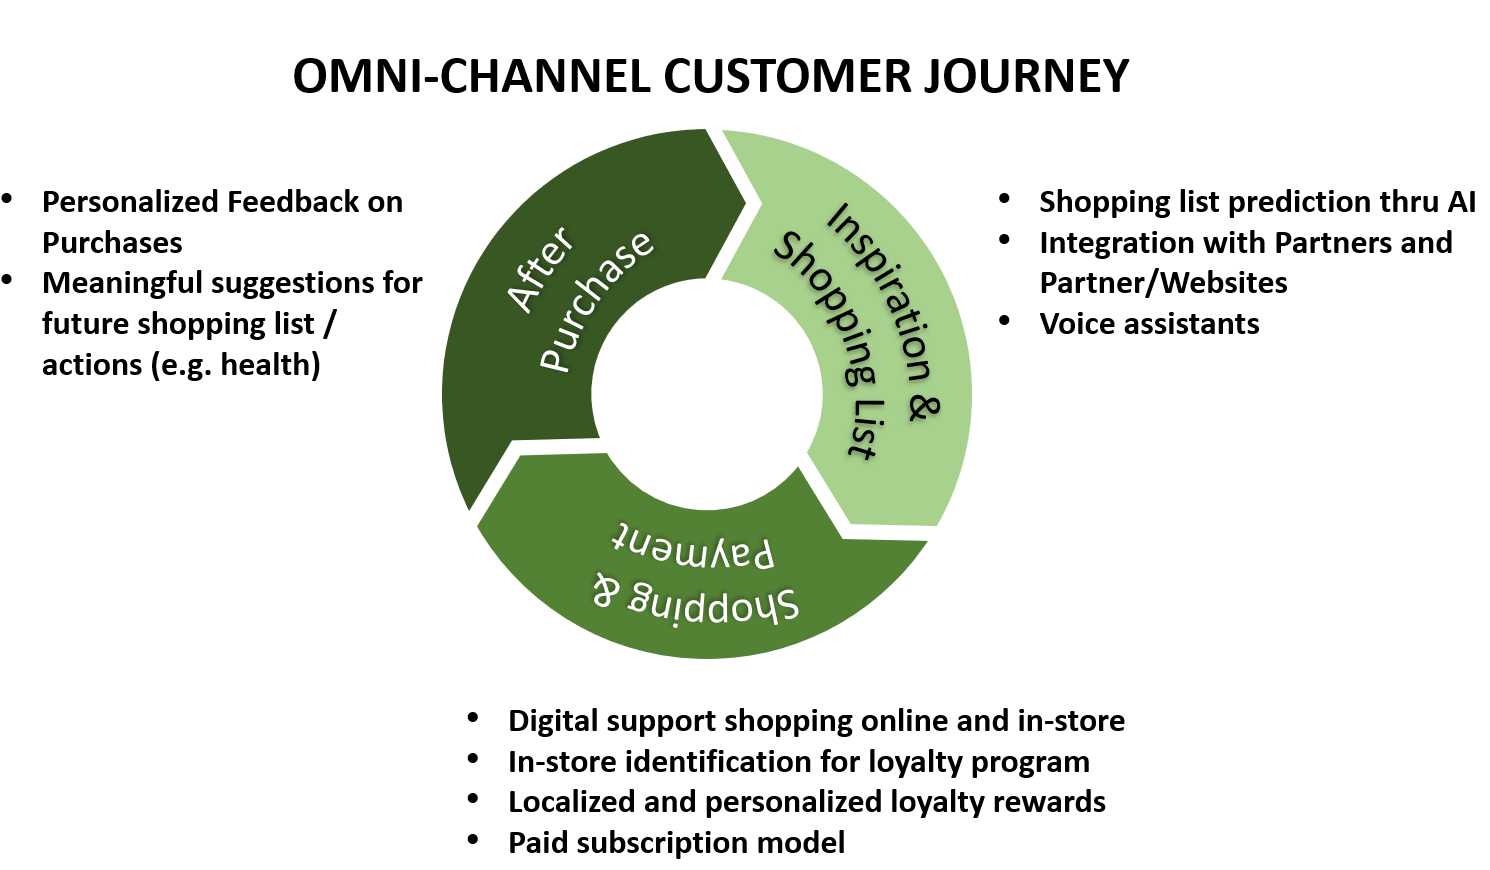 omnichannel customer journey and digitial enablers for omnichannel engagement and shopping